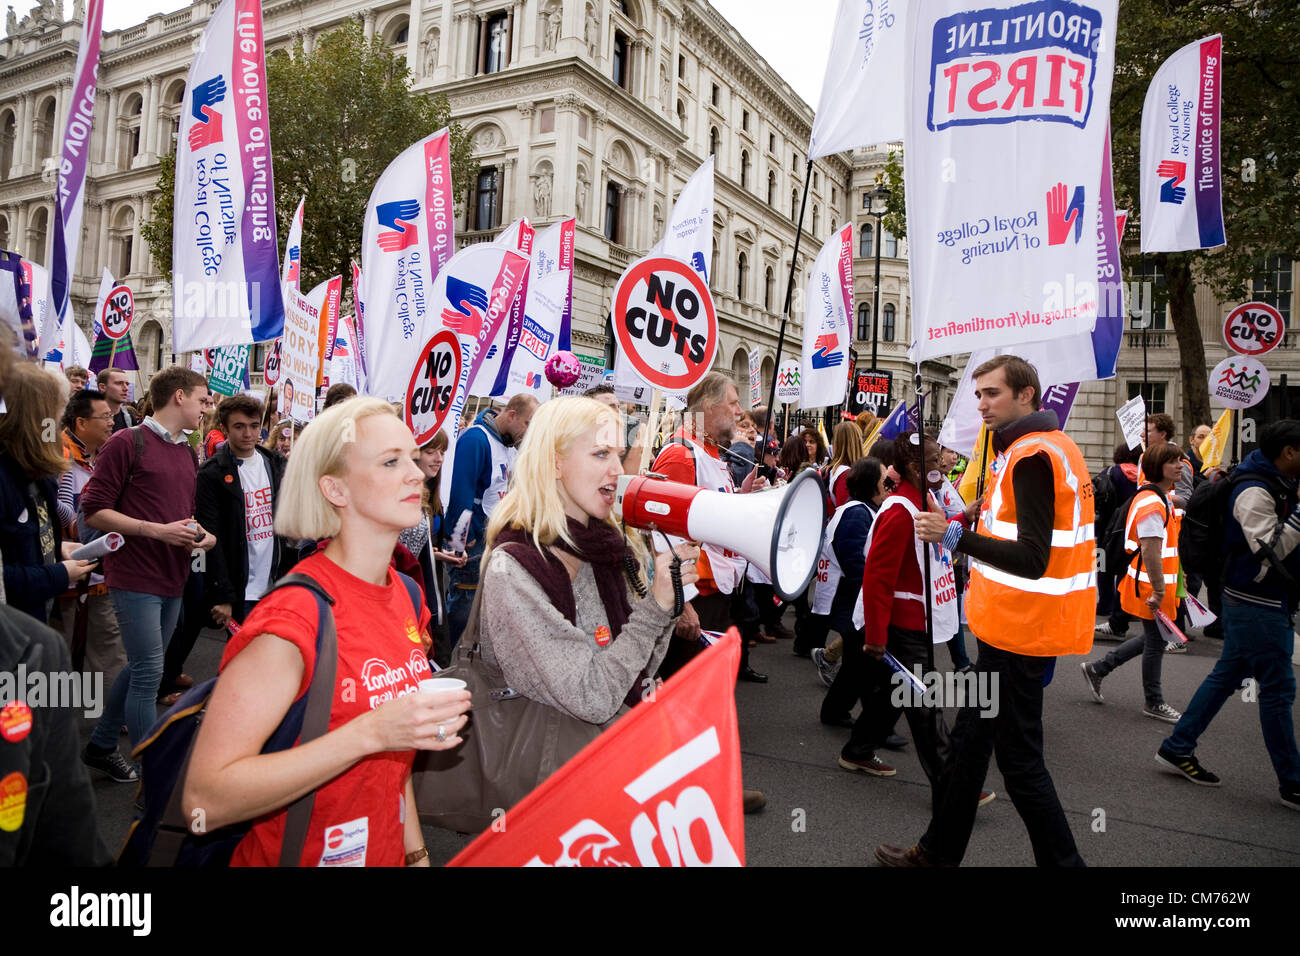 London, UK. 20th October 2012. Marchers and protestors in Whitehall pass the end of Downing Street on the TUC 'A - Stock Image